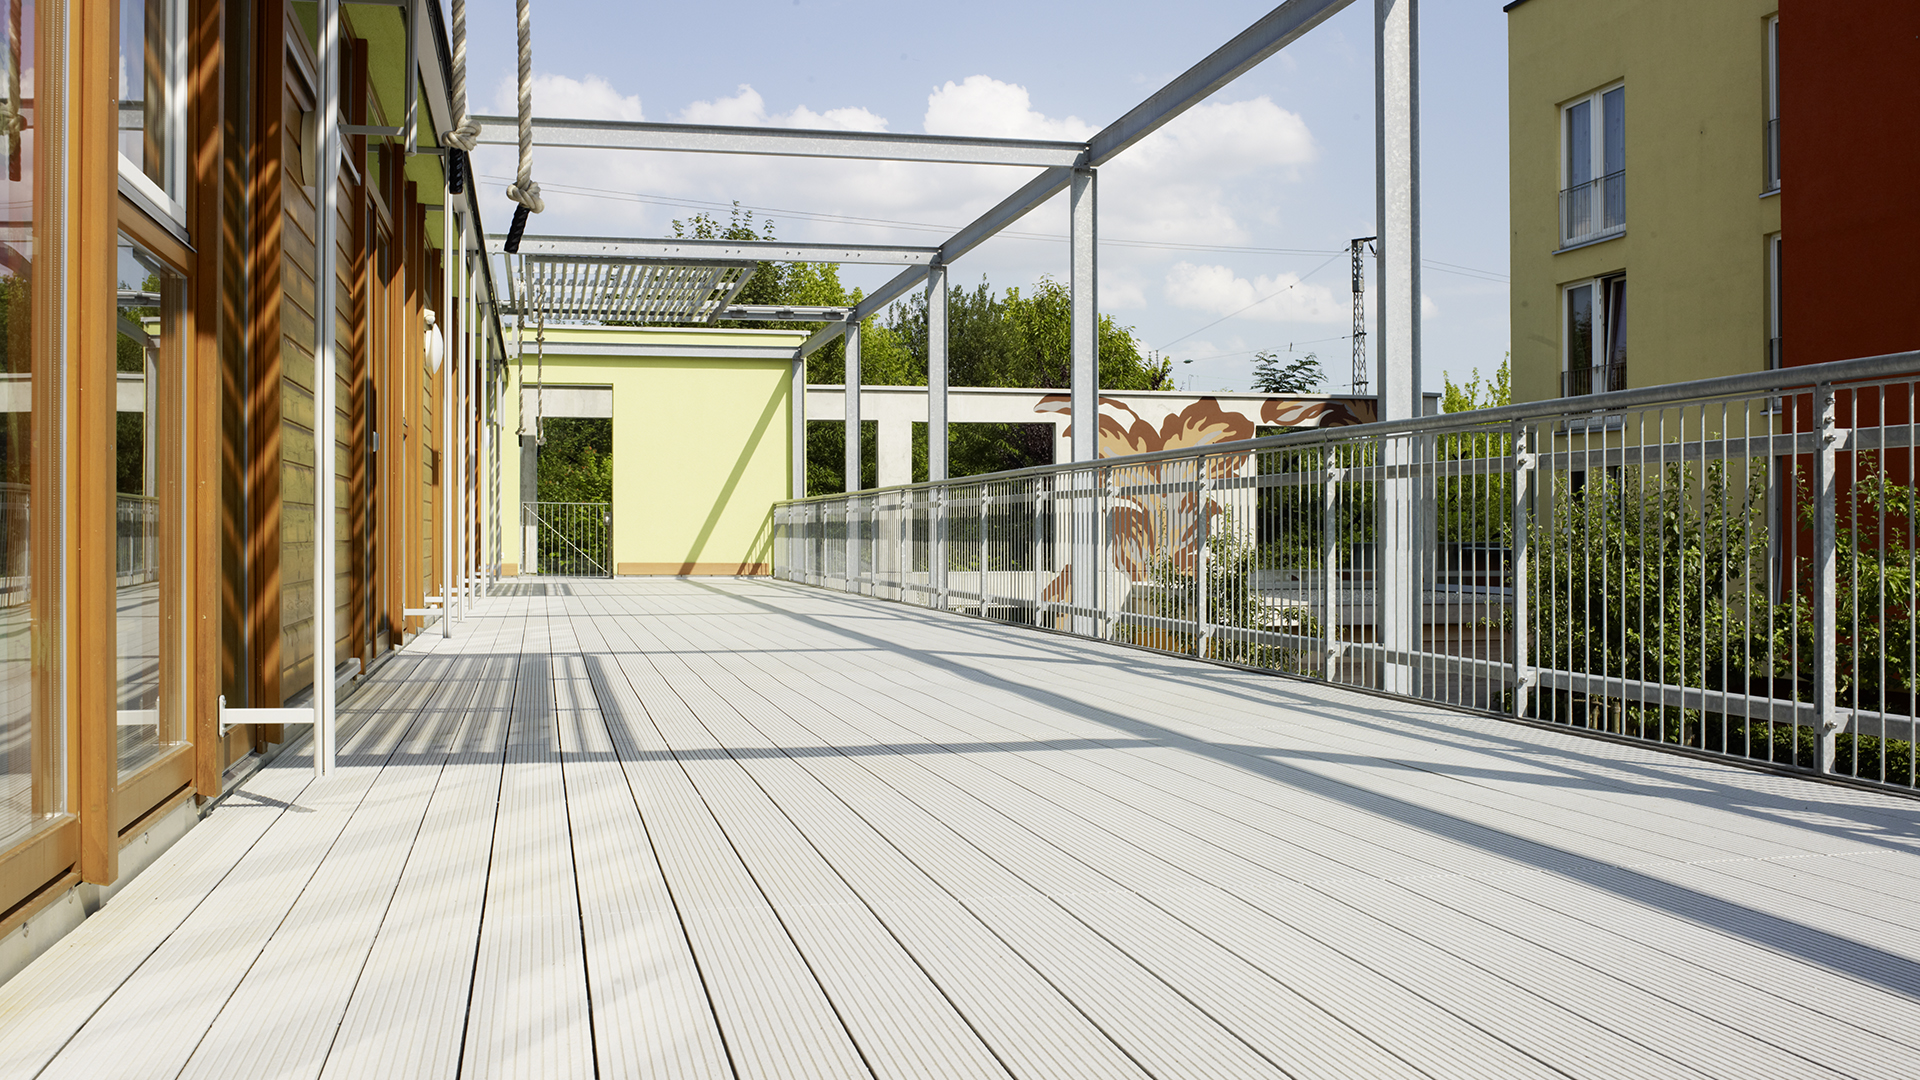 UPM ProFi composite decking at kindergarten